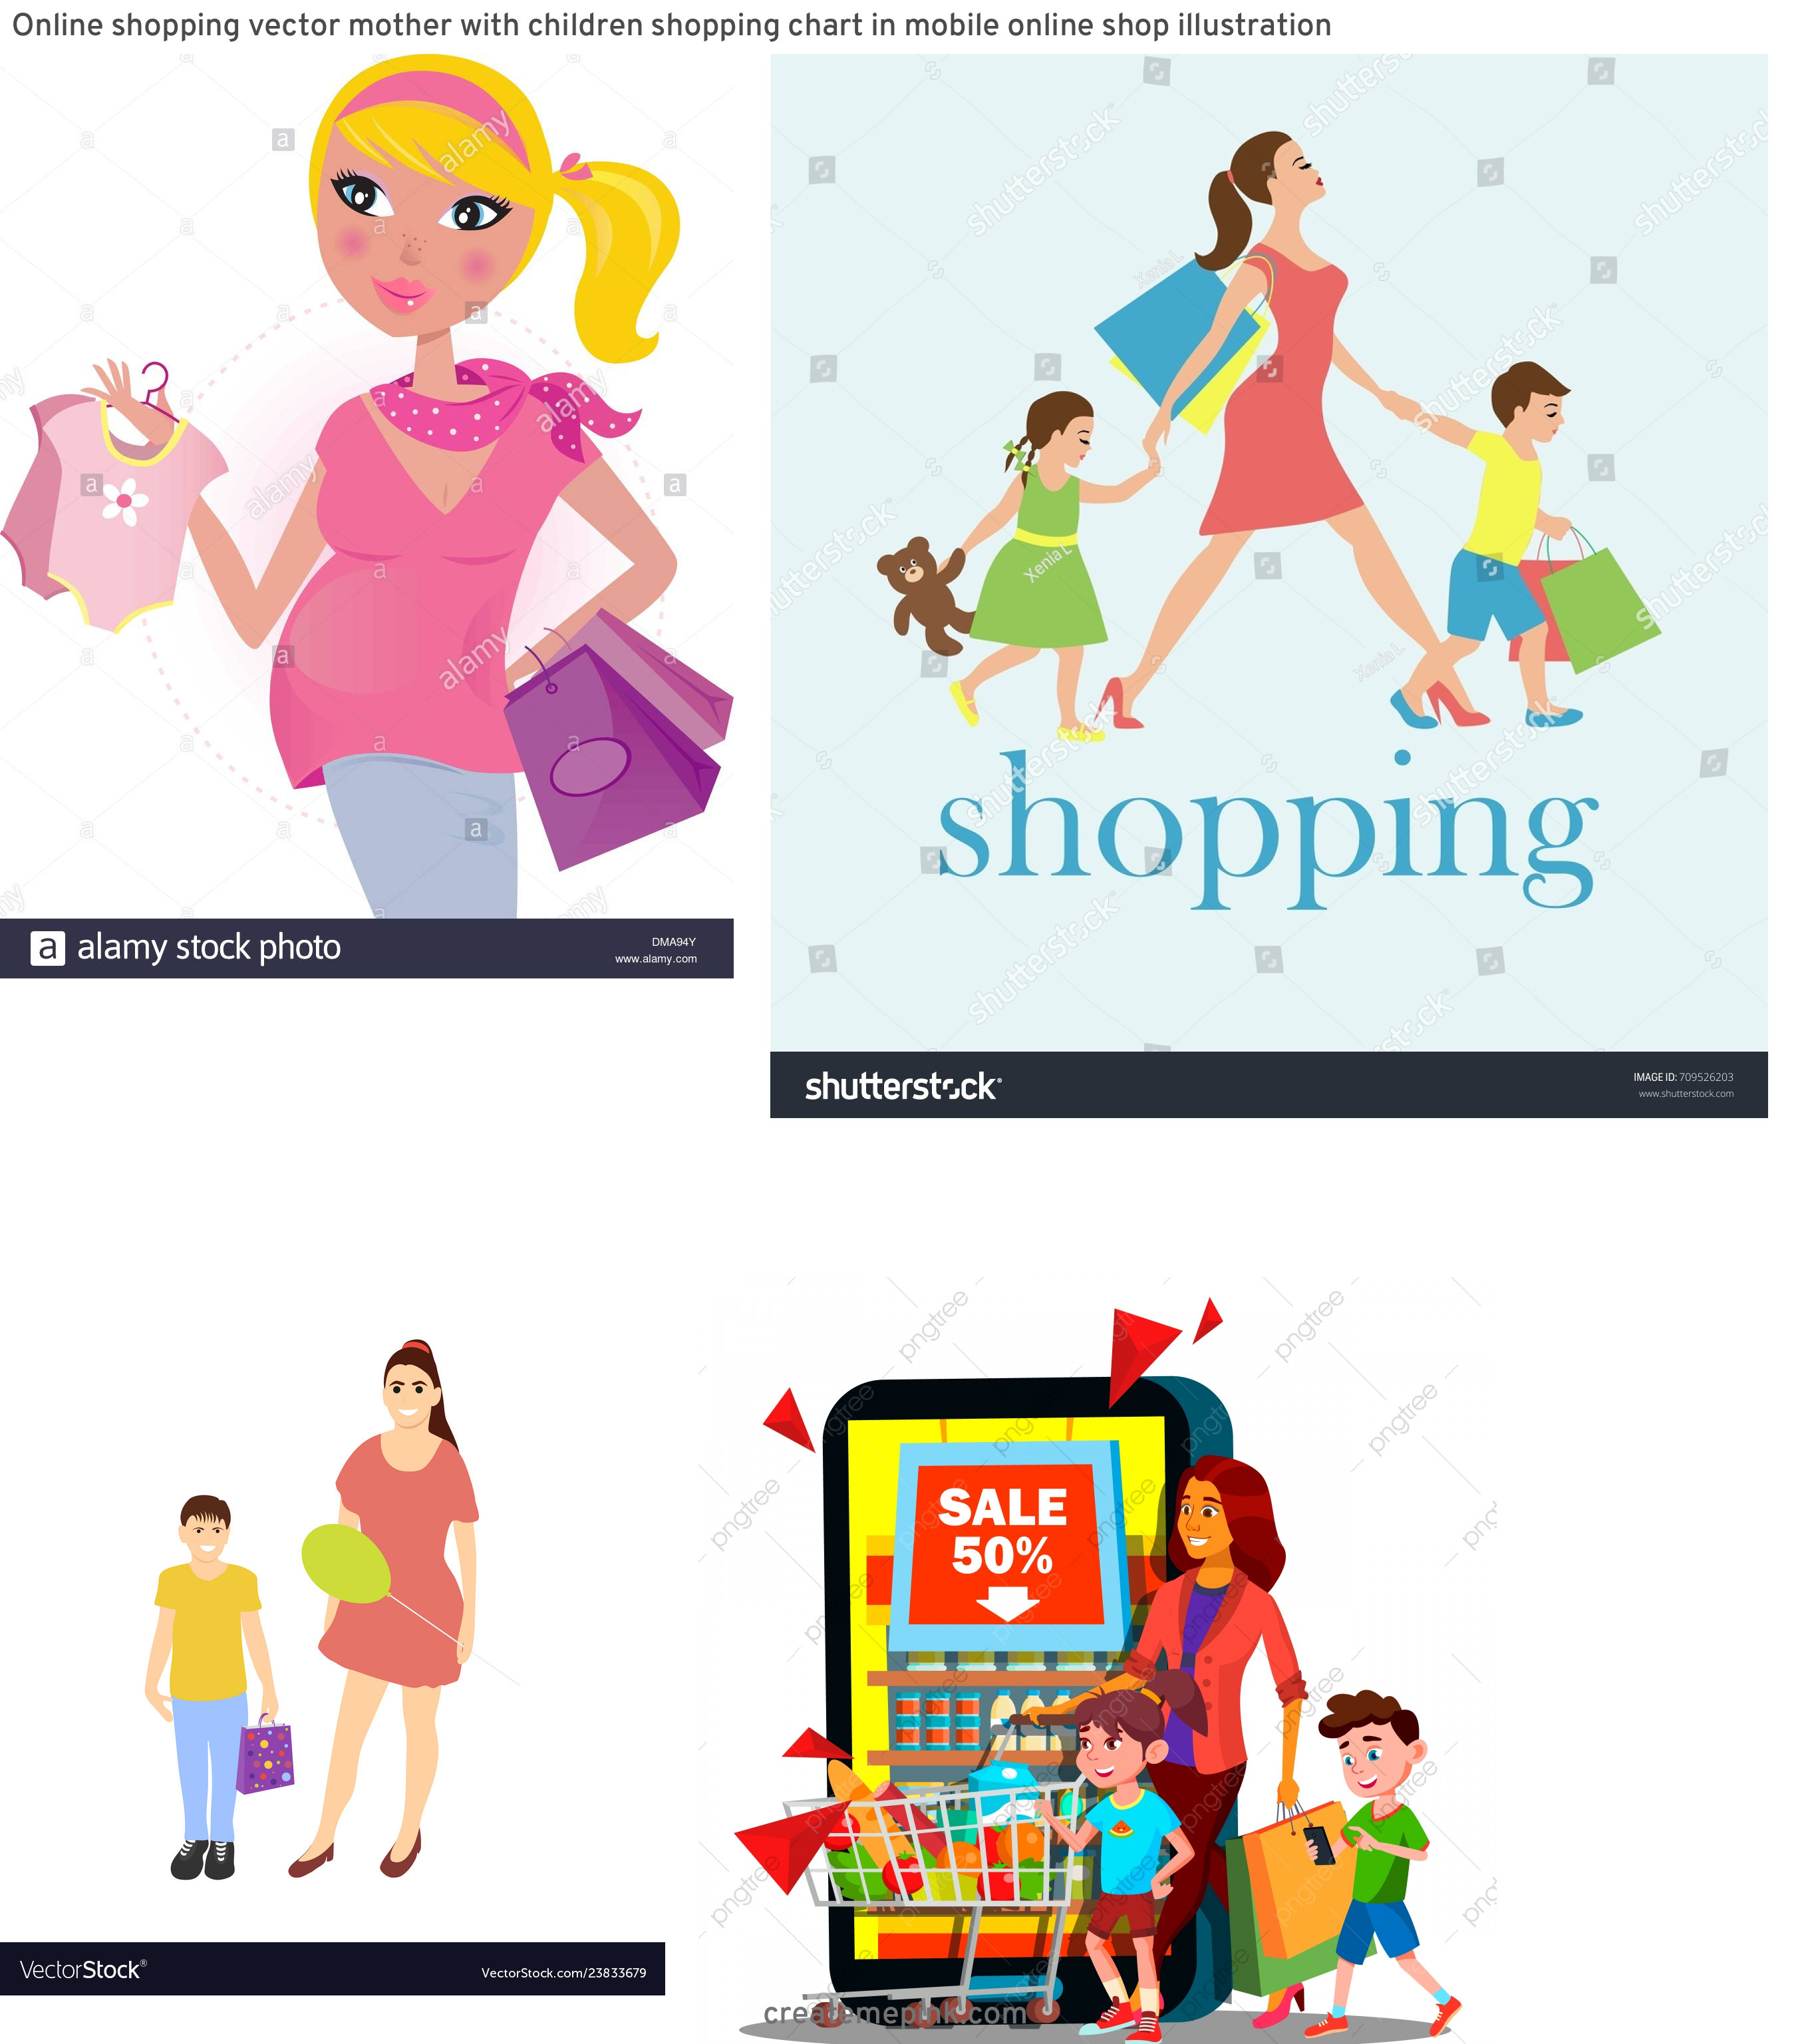 Shopping Vector Of Mom: Online Shopping Vector Mother With Children Shopping Chart In Mobile Online Shop Illustration